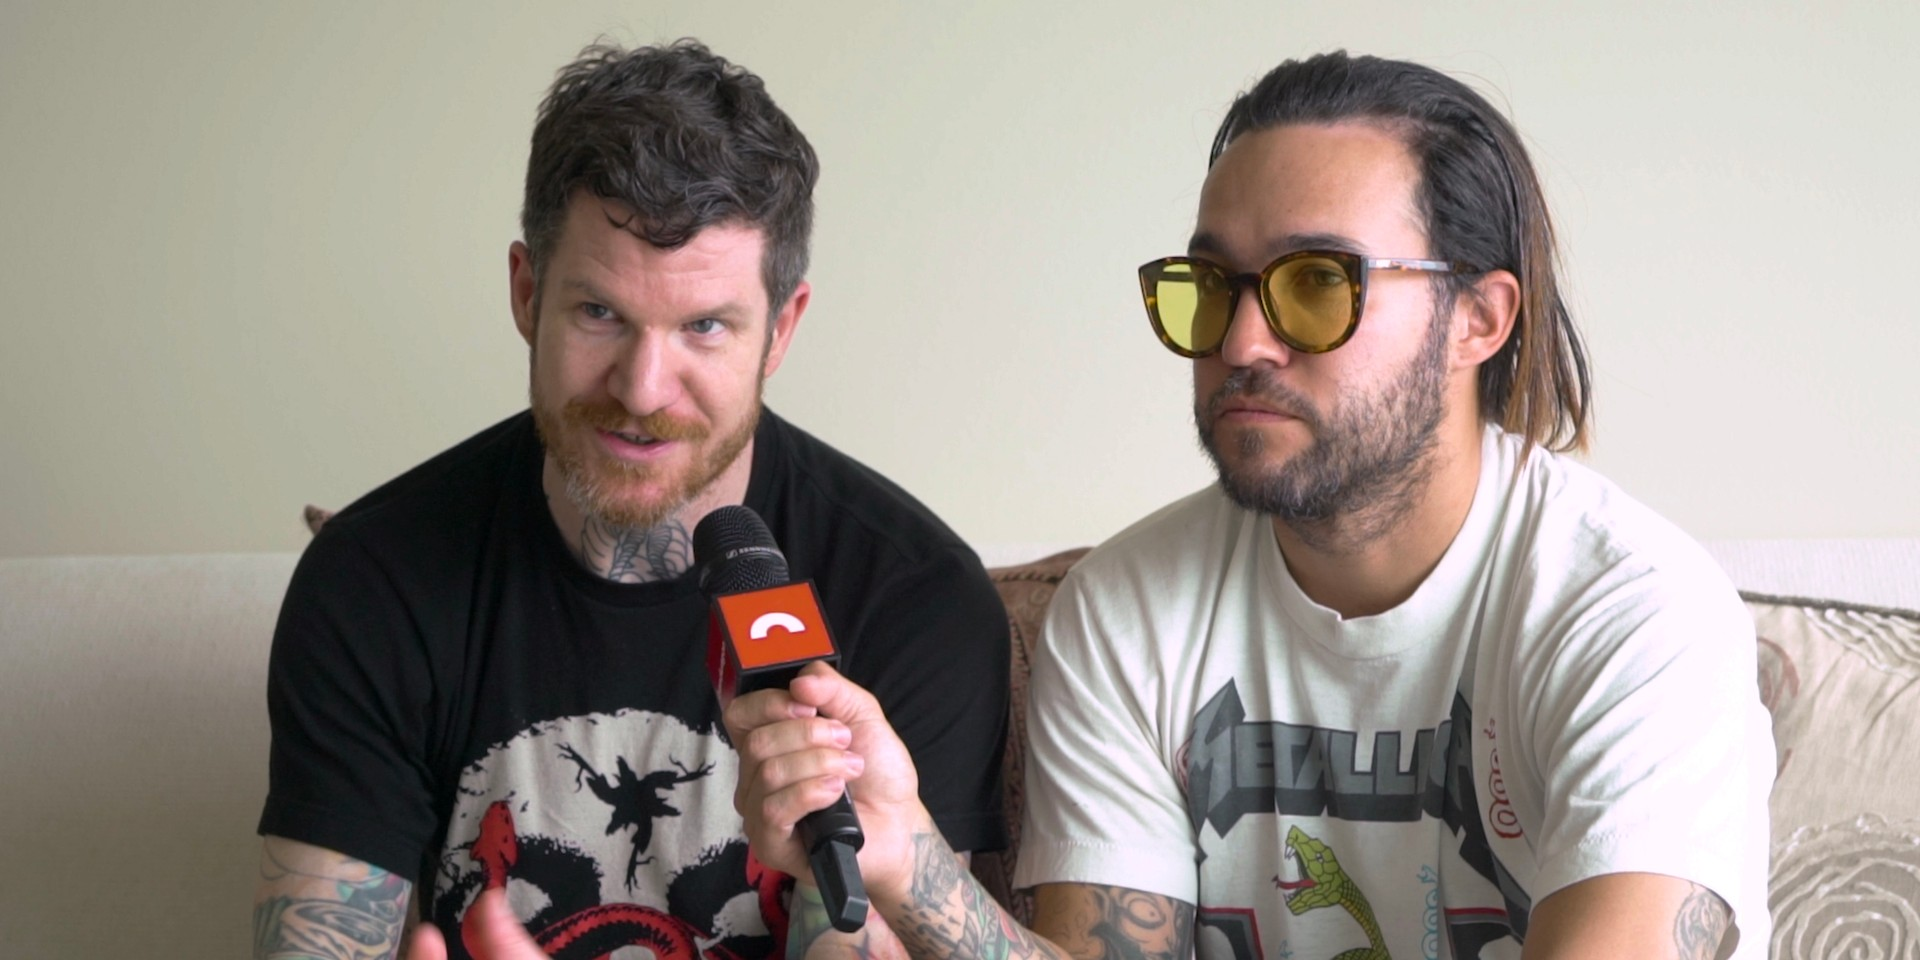 Pete Wentz and Andy Hurley talk the making of the latest Fall Out Boy album MANIA –watch